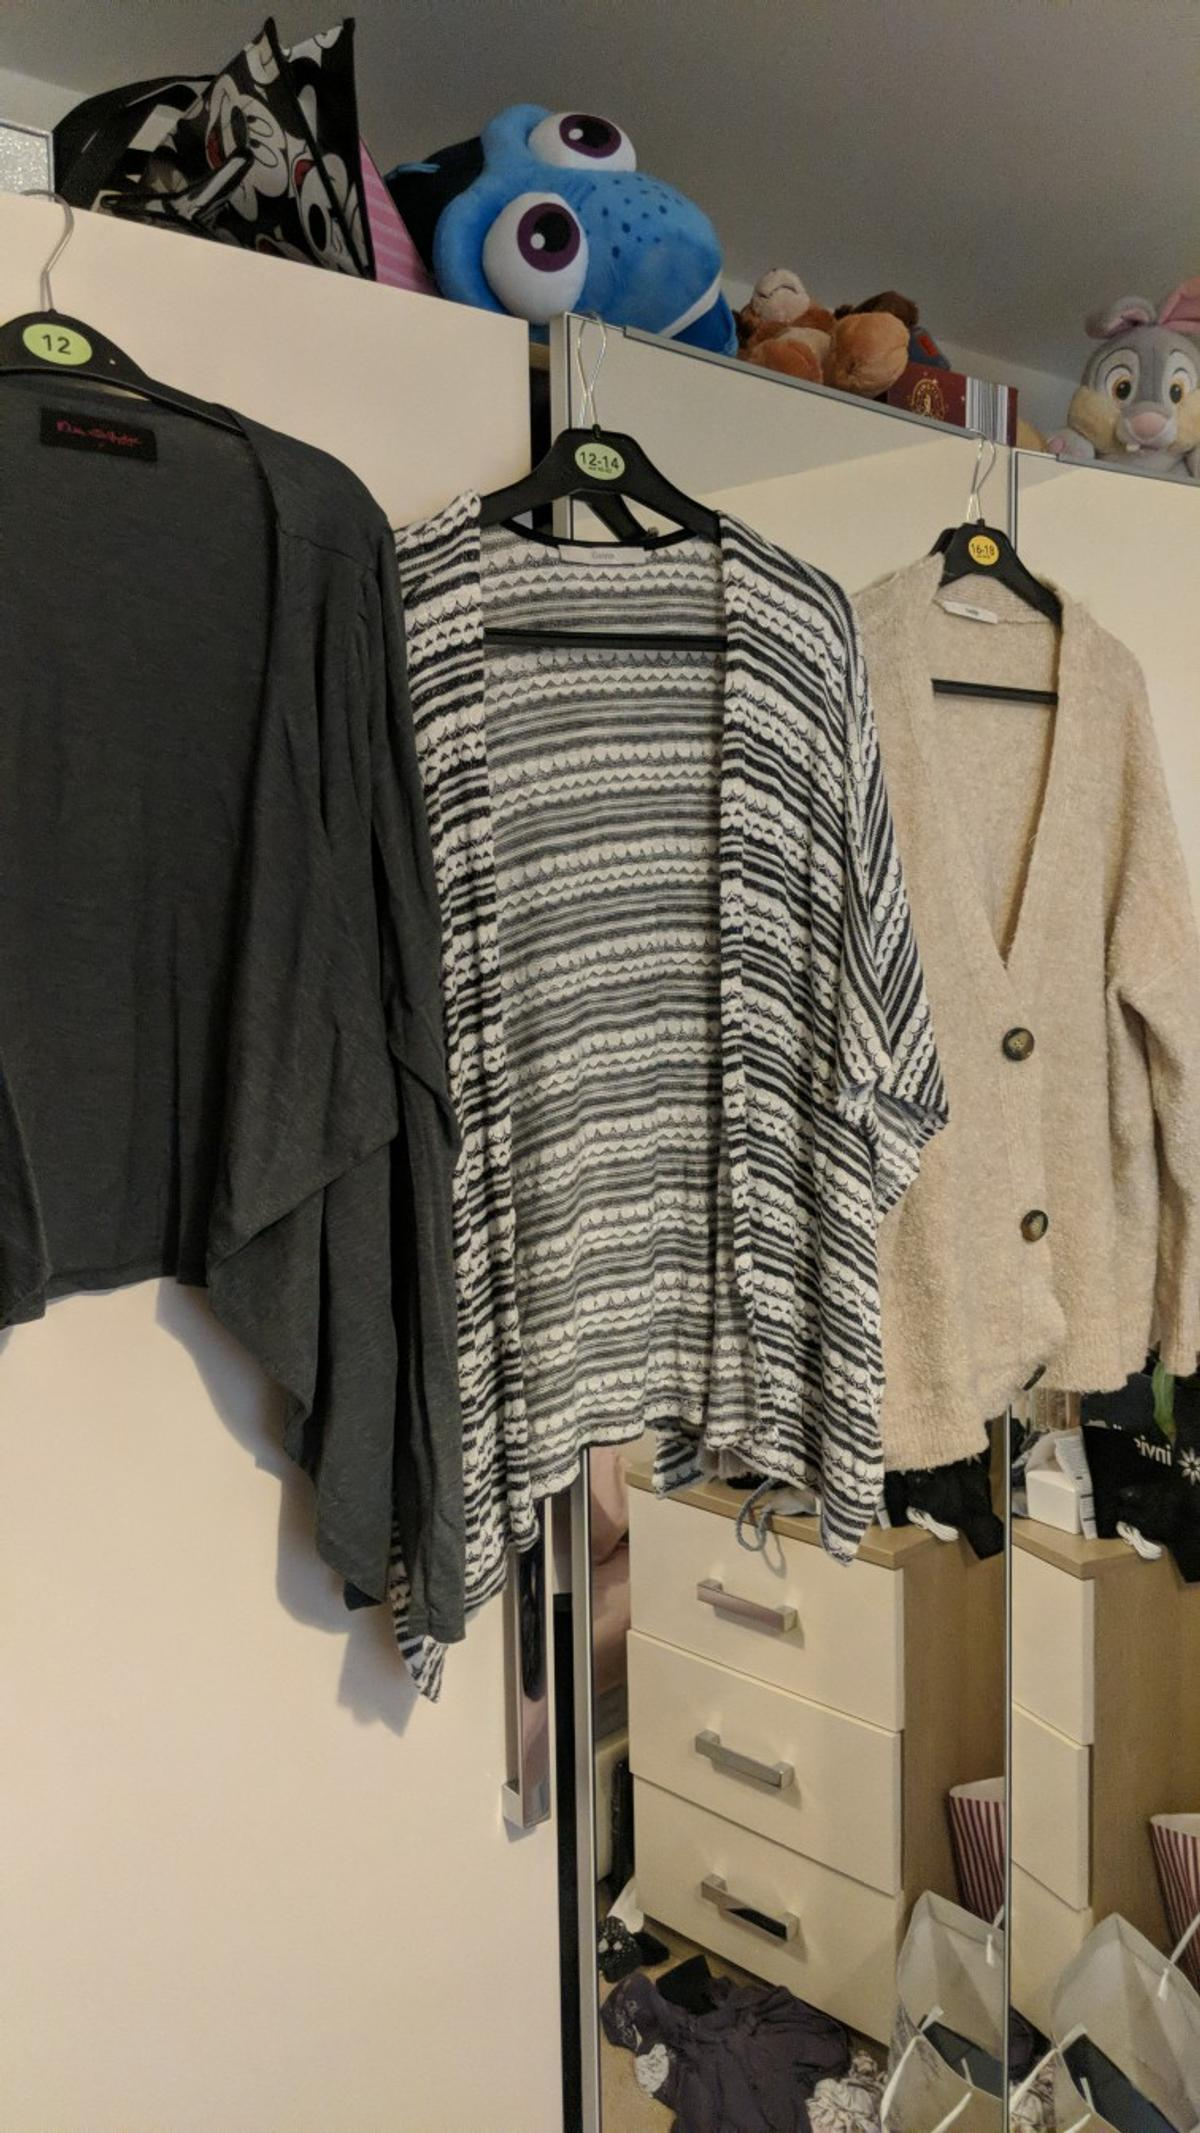 short grey cardigan - Size 16 - Miss Selfridge long black and white cardigan - Size 12 - Gorge Cream cardigan - Size 12-14 - George Buyer to collect from LS26